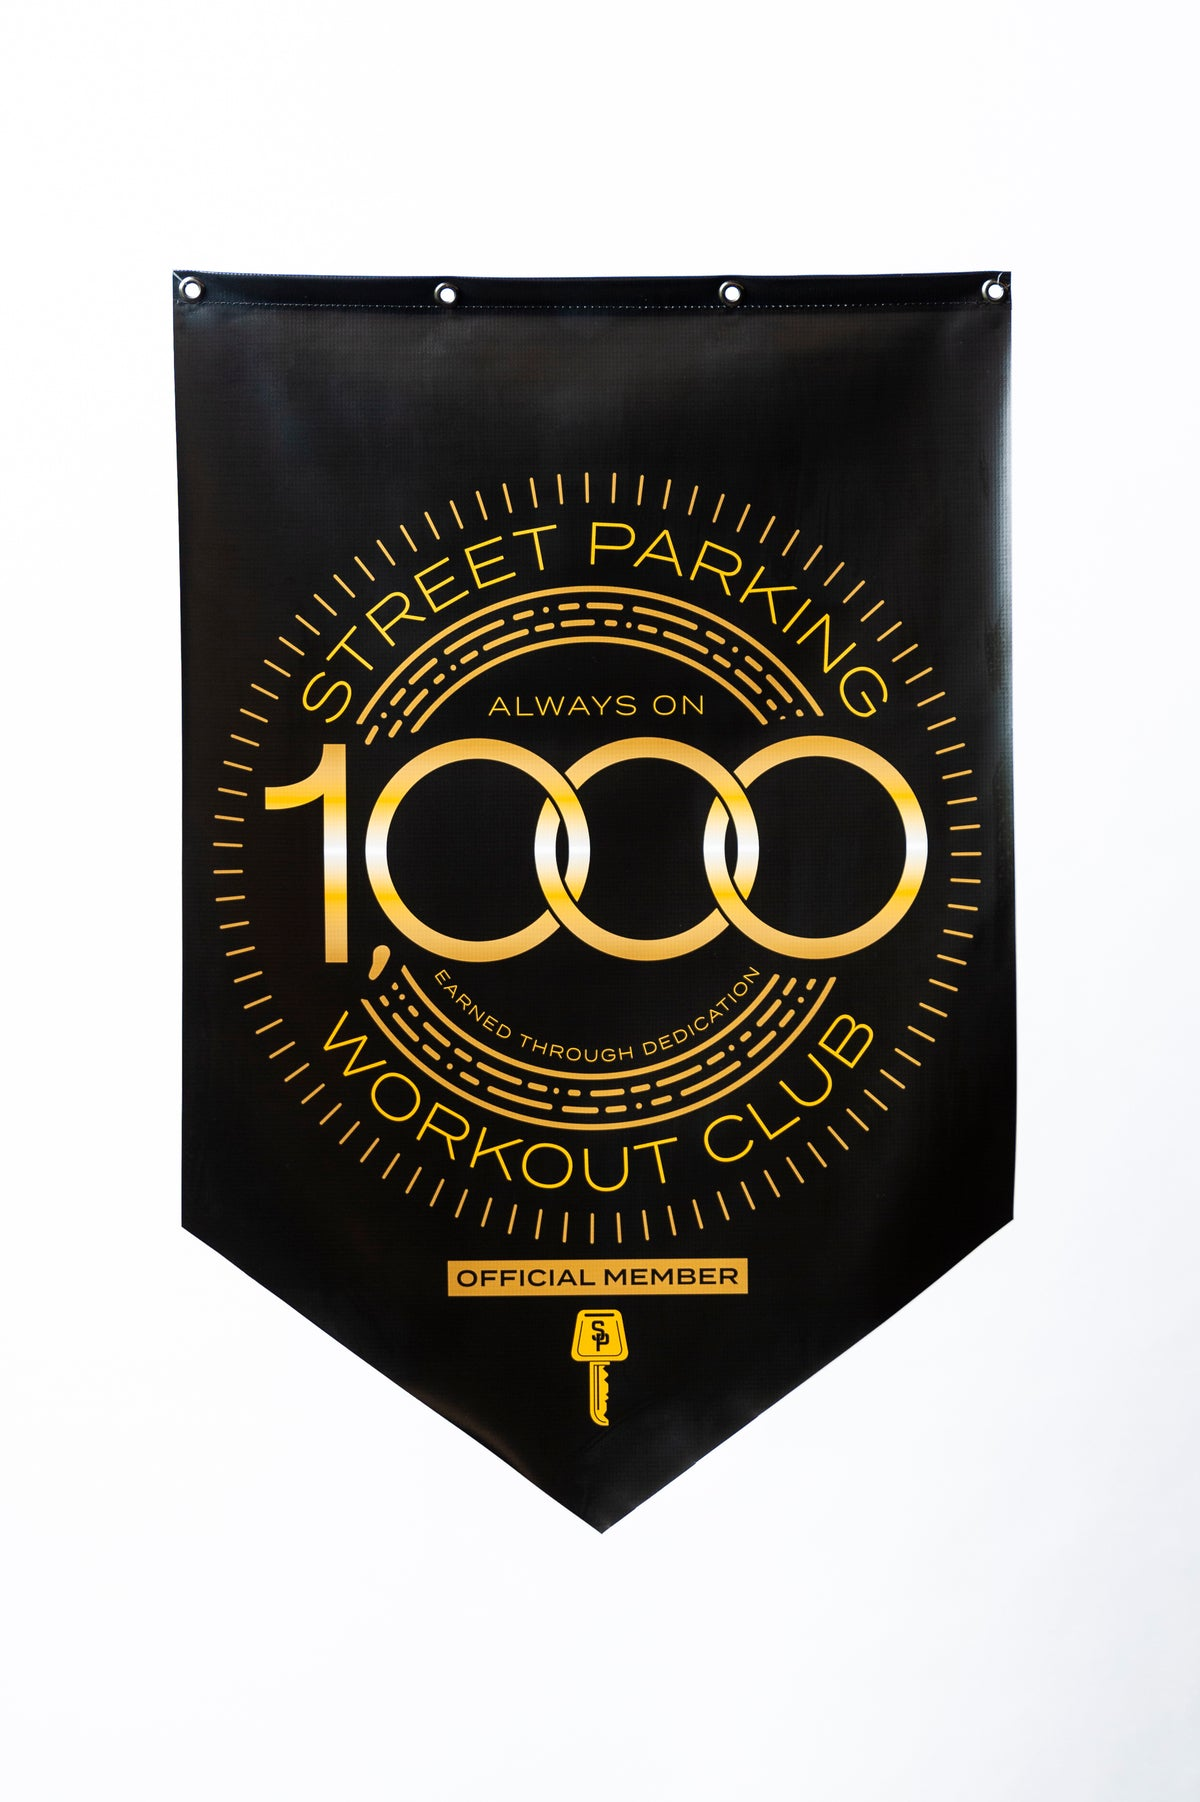 1000 workout Banner - Street Parking